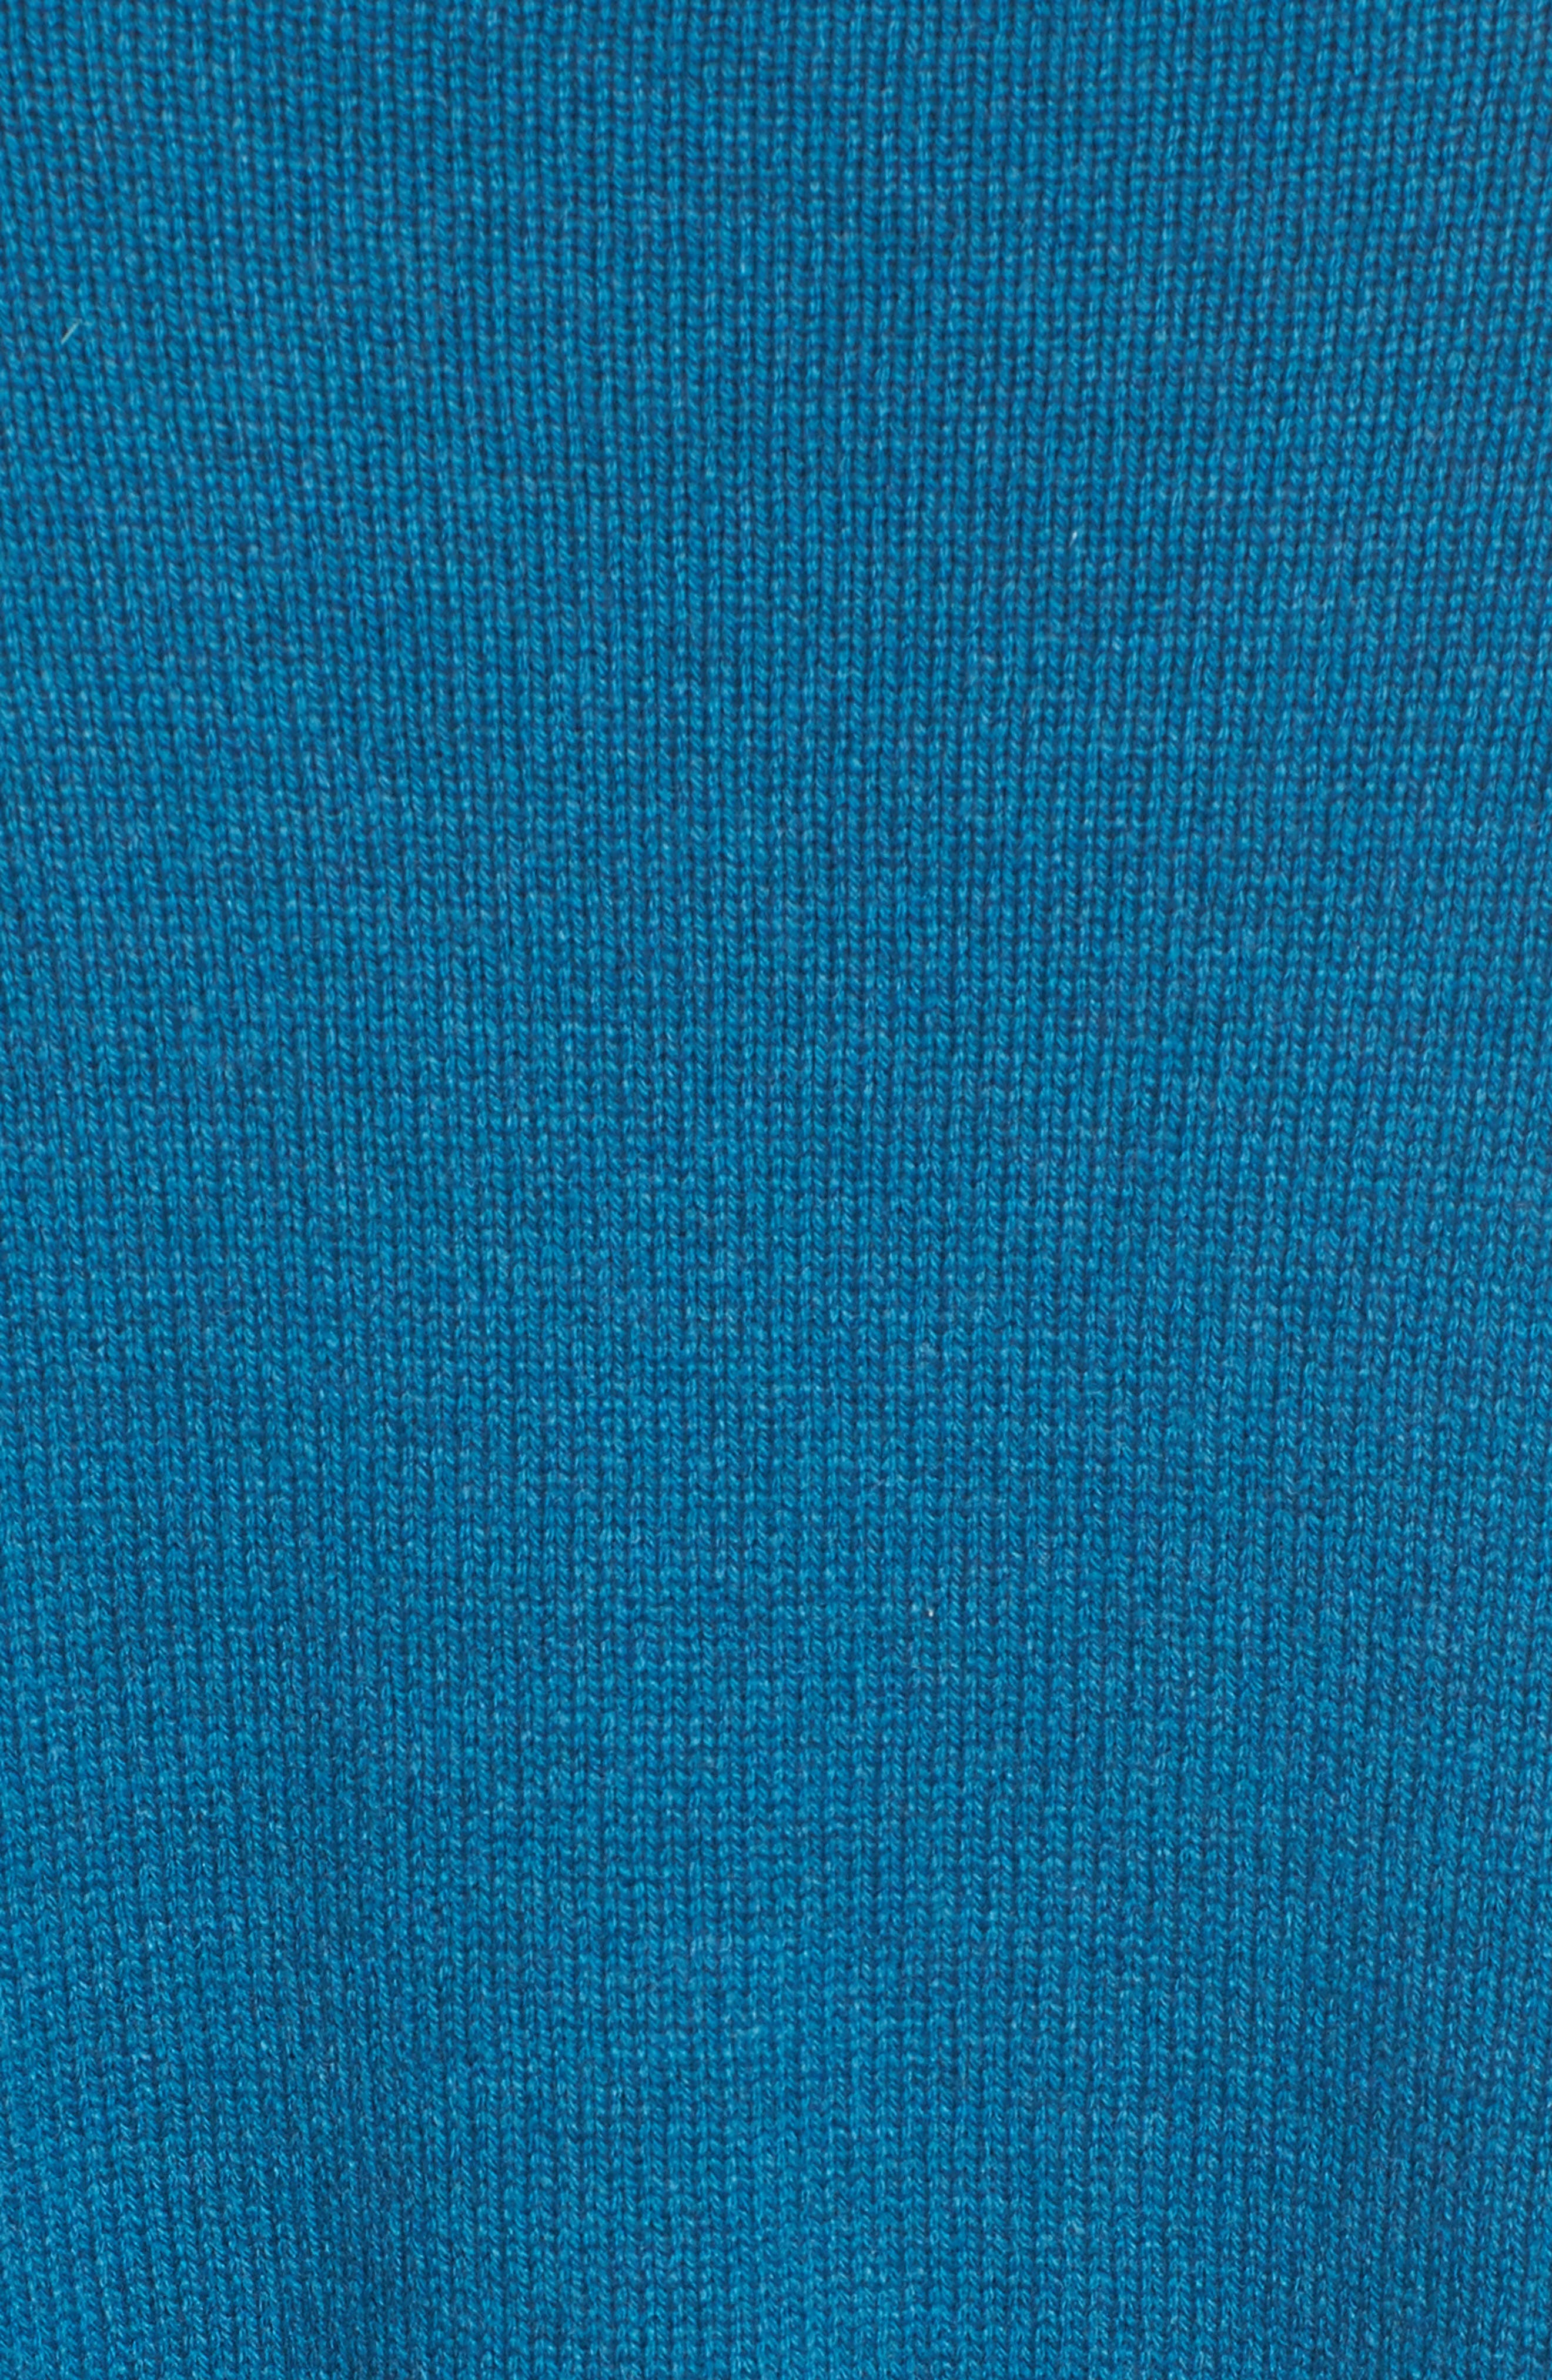 Cashmere & Wool Blend Oversize Sweater,                             Alternate thumbnail 3, color,                             Nile